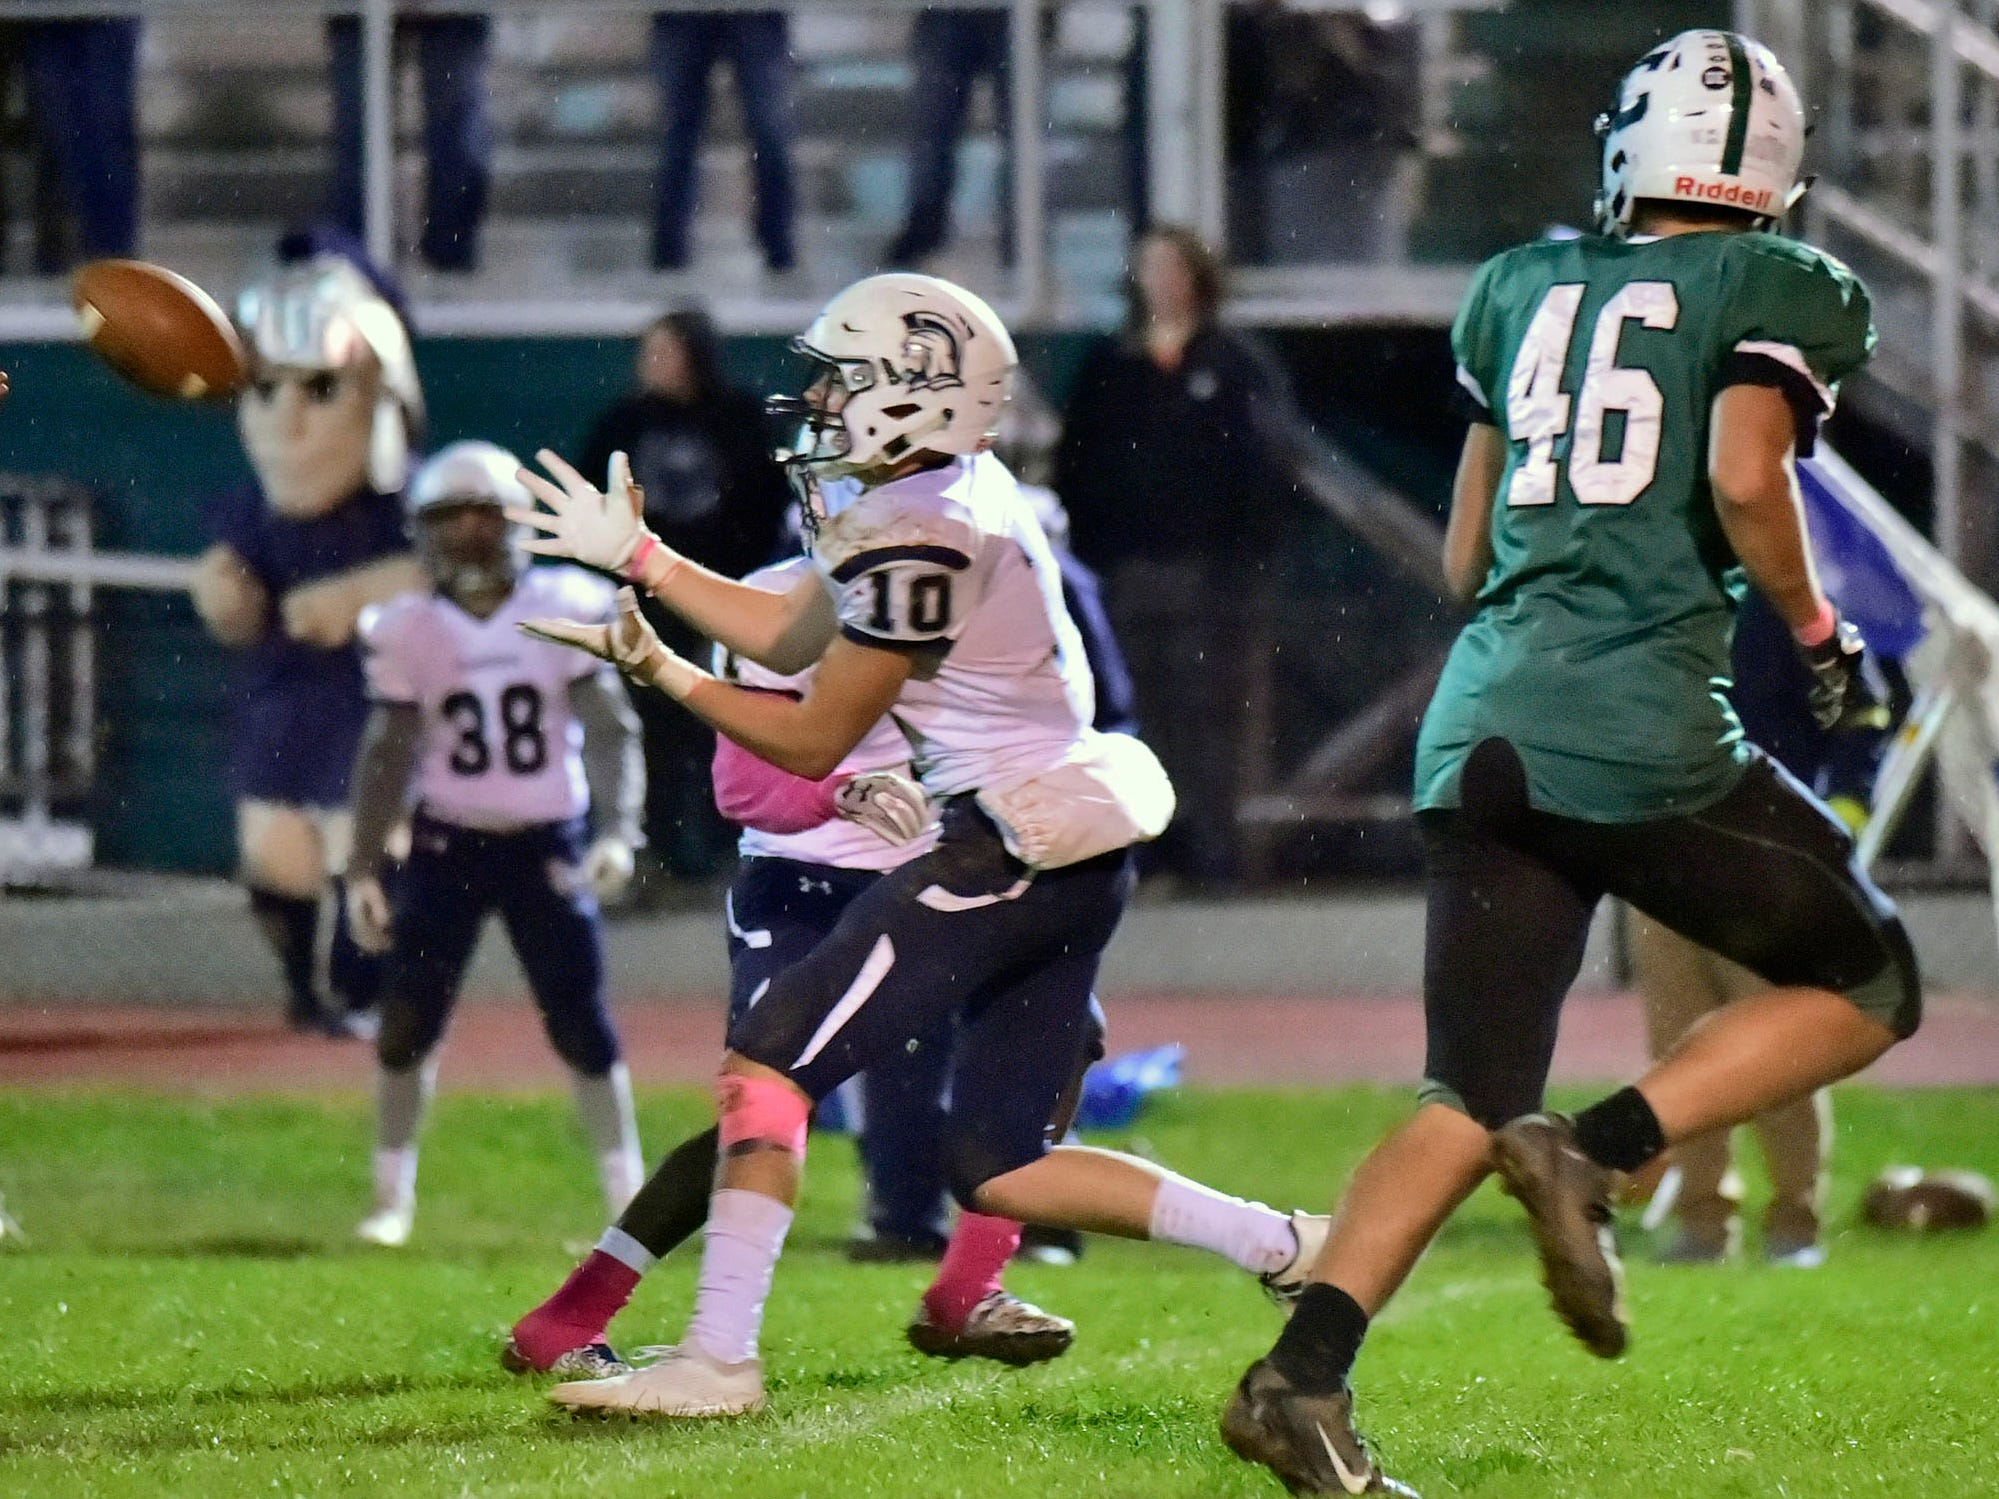 Chambersburg's Brady Hughes (10) is set to pick off a pass with seconds remaining in the game to seal the vactory during the 26-20 victory over Carlisle on Friday, October 26, 2018.